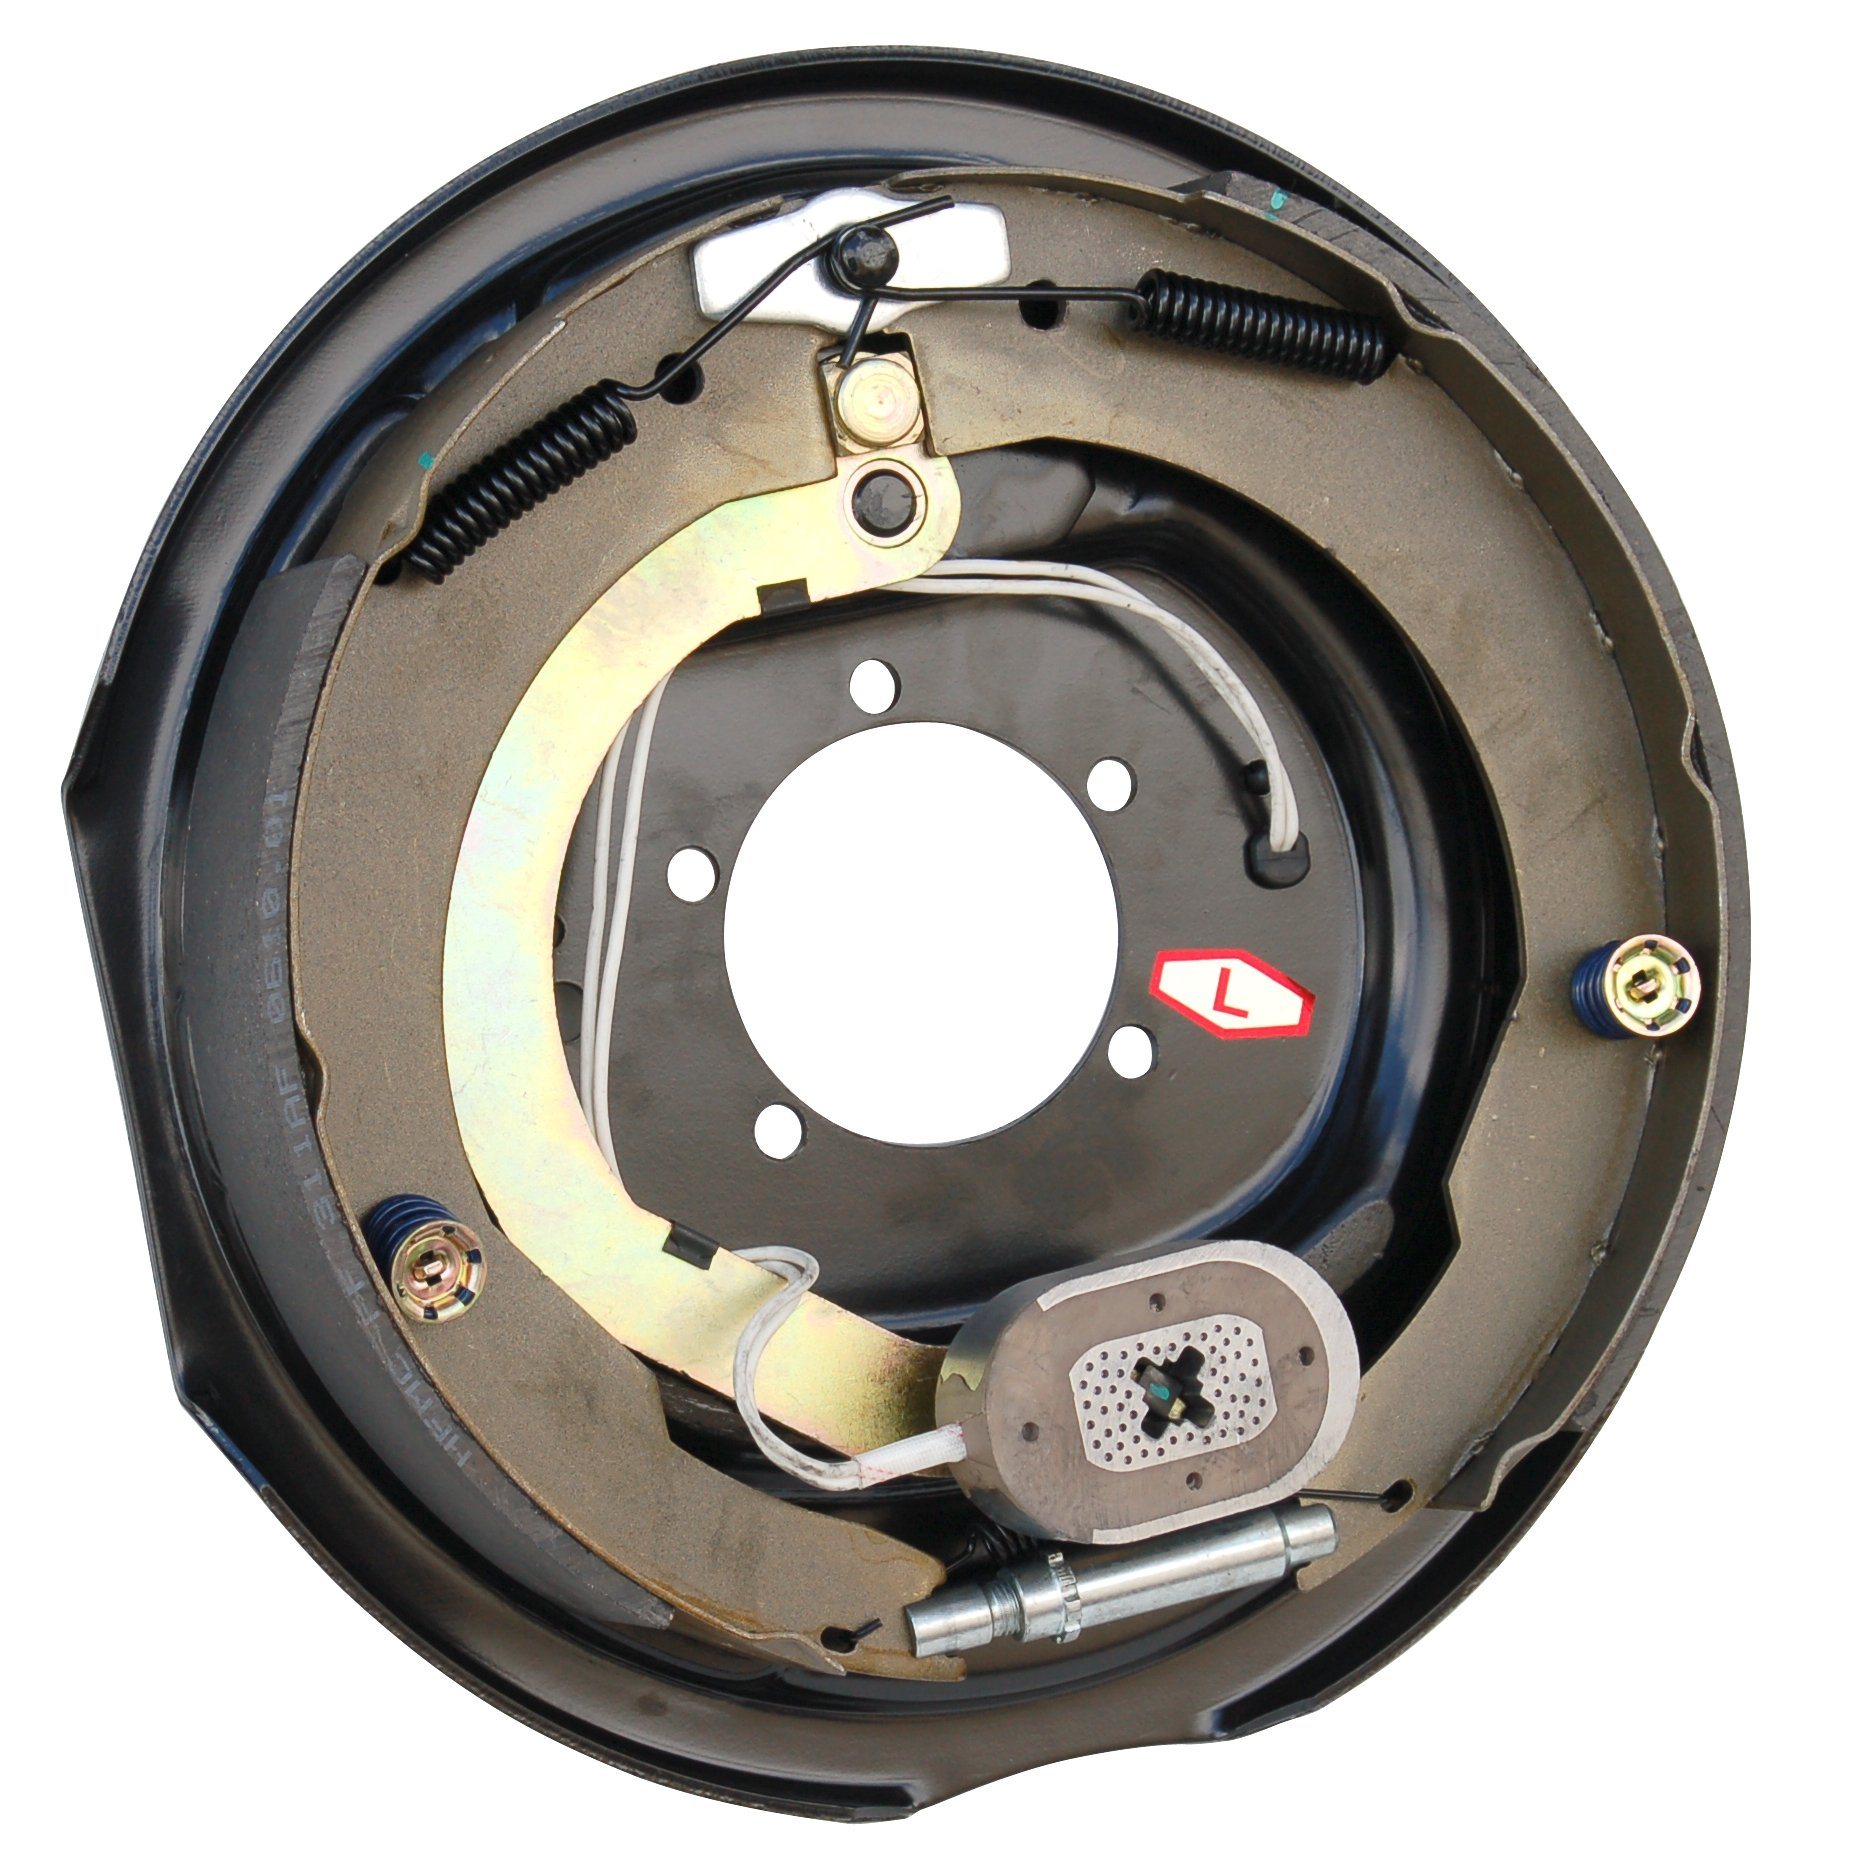 TowZone 12-Inch Electric Drum Brakes for Trailers by TowZone